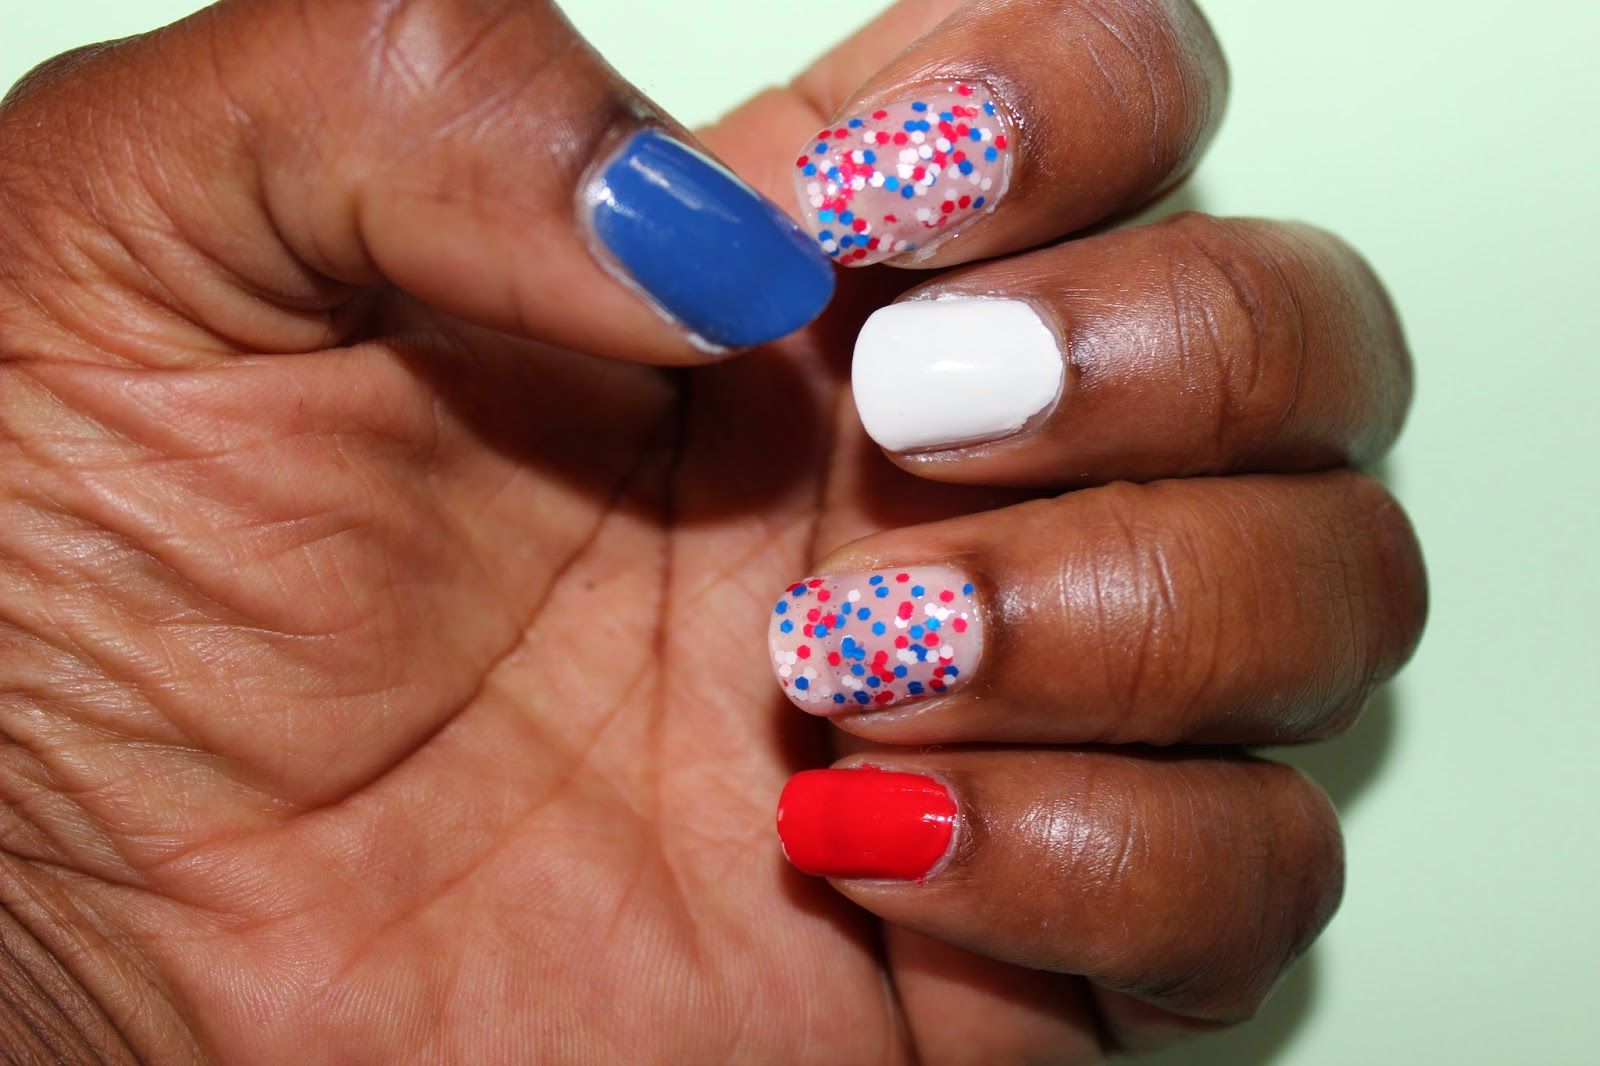 nailart spécial Equipe de France, French team, les Bleus, mondial 2014, football, maquillage, soccer